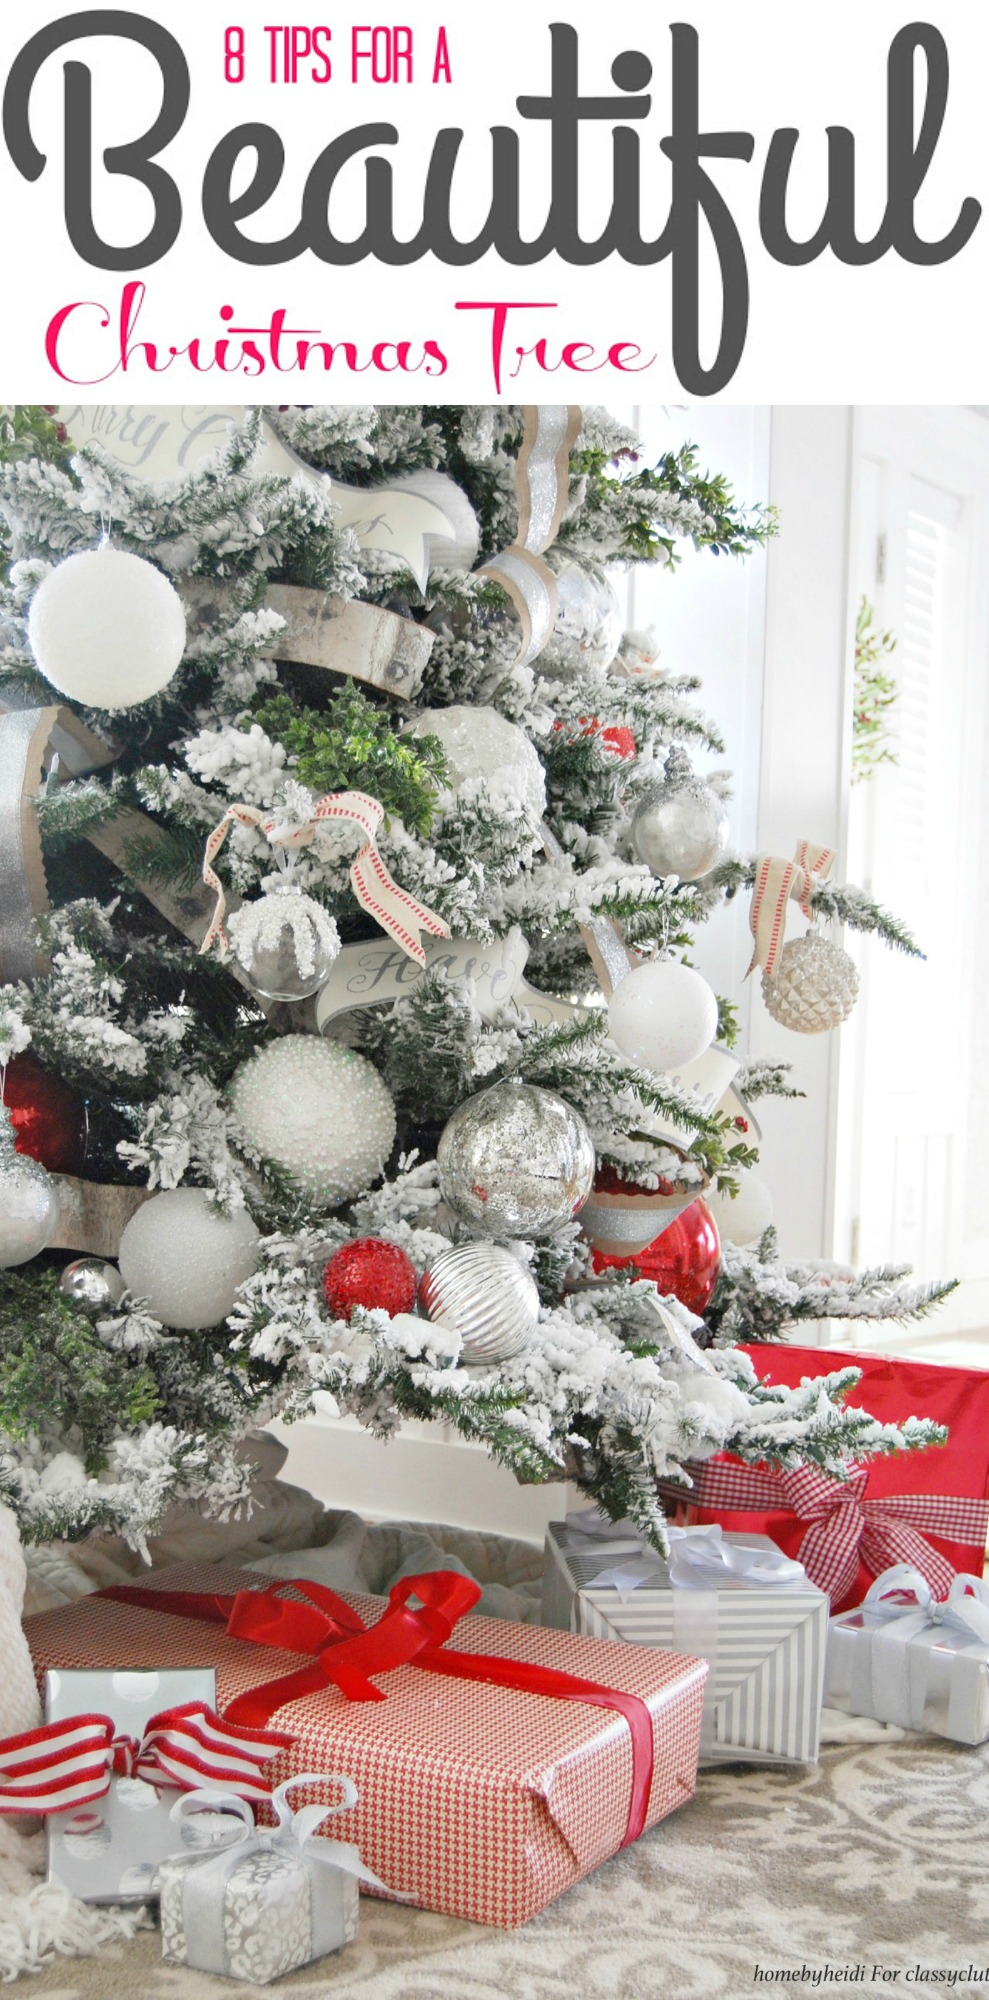 8 tips for a Beautiful Christmas Tree - Click for tutorial